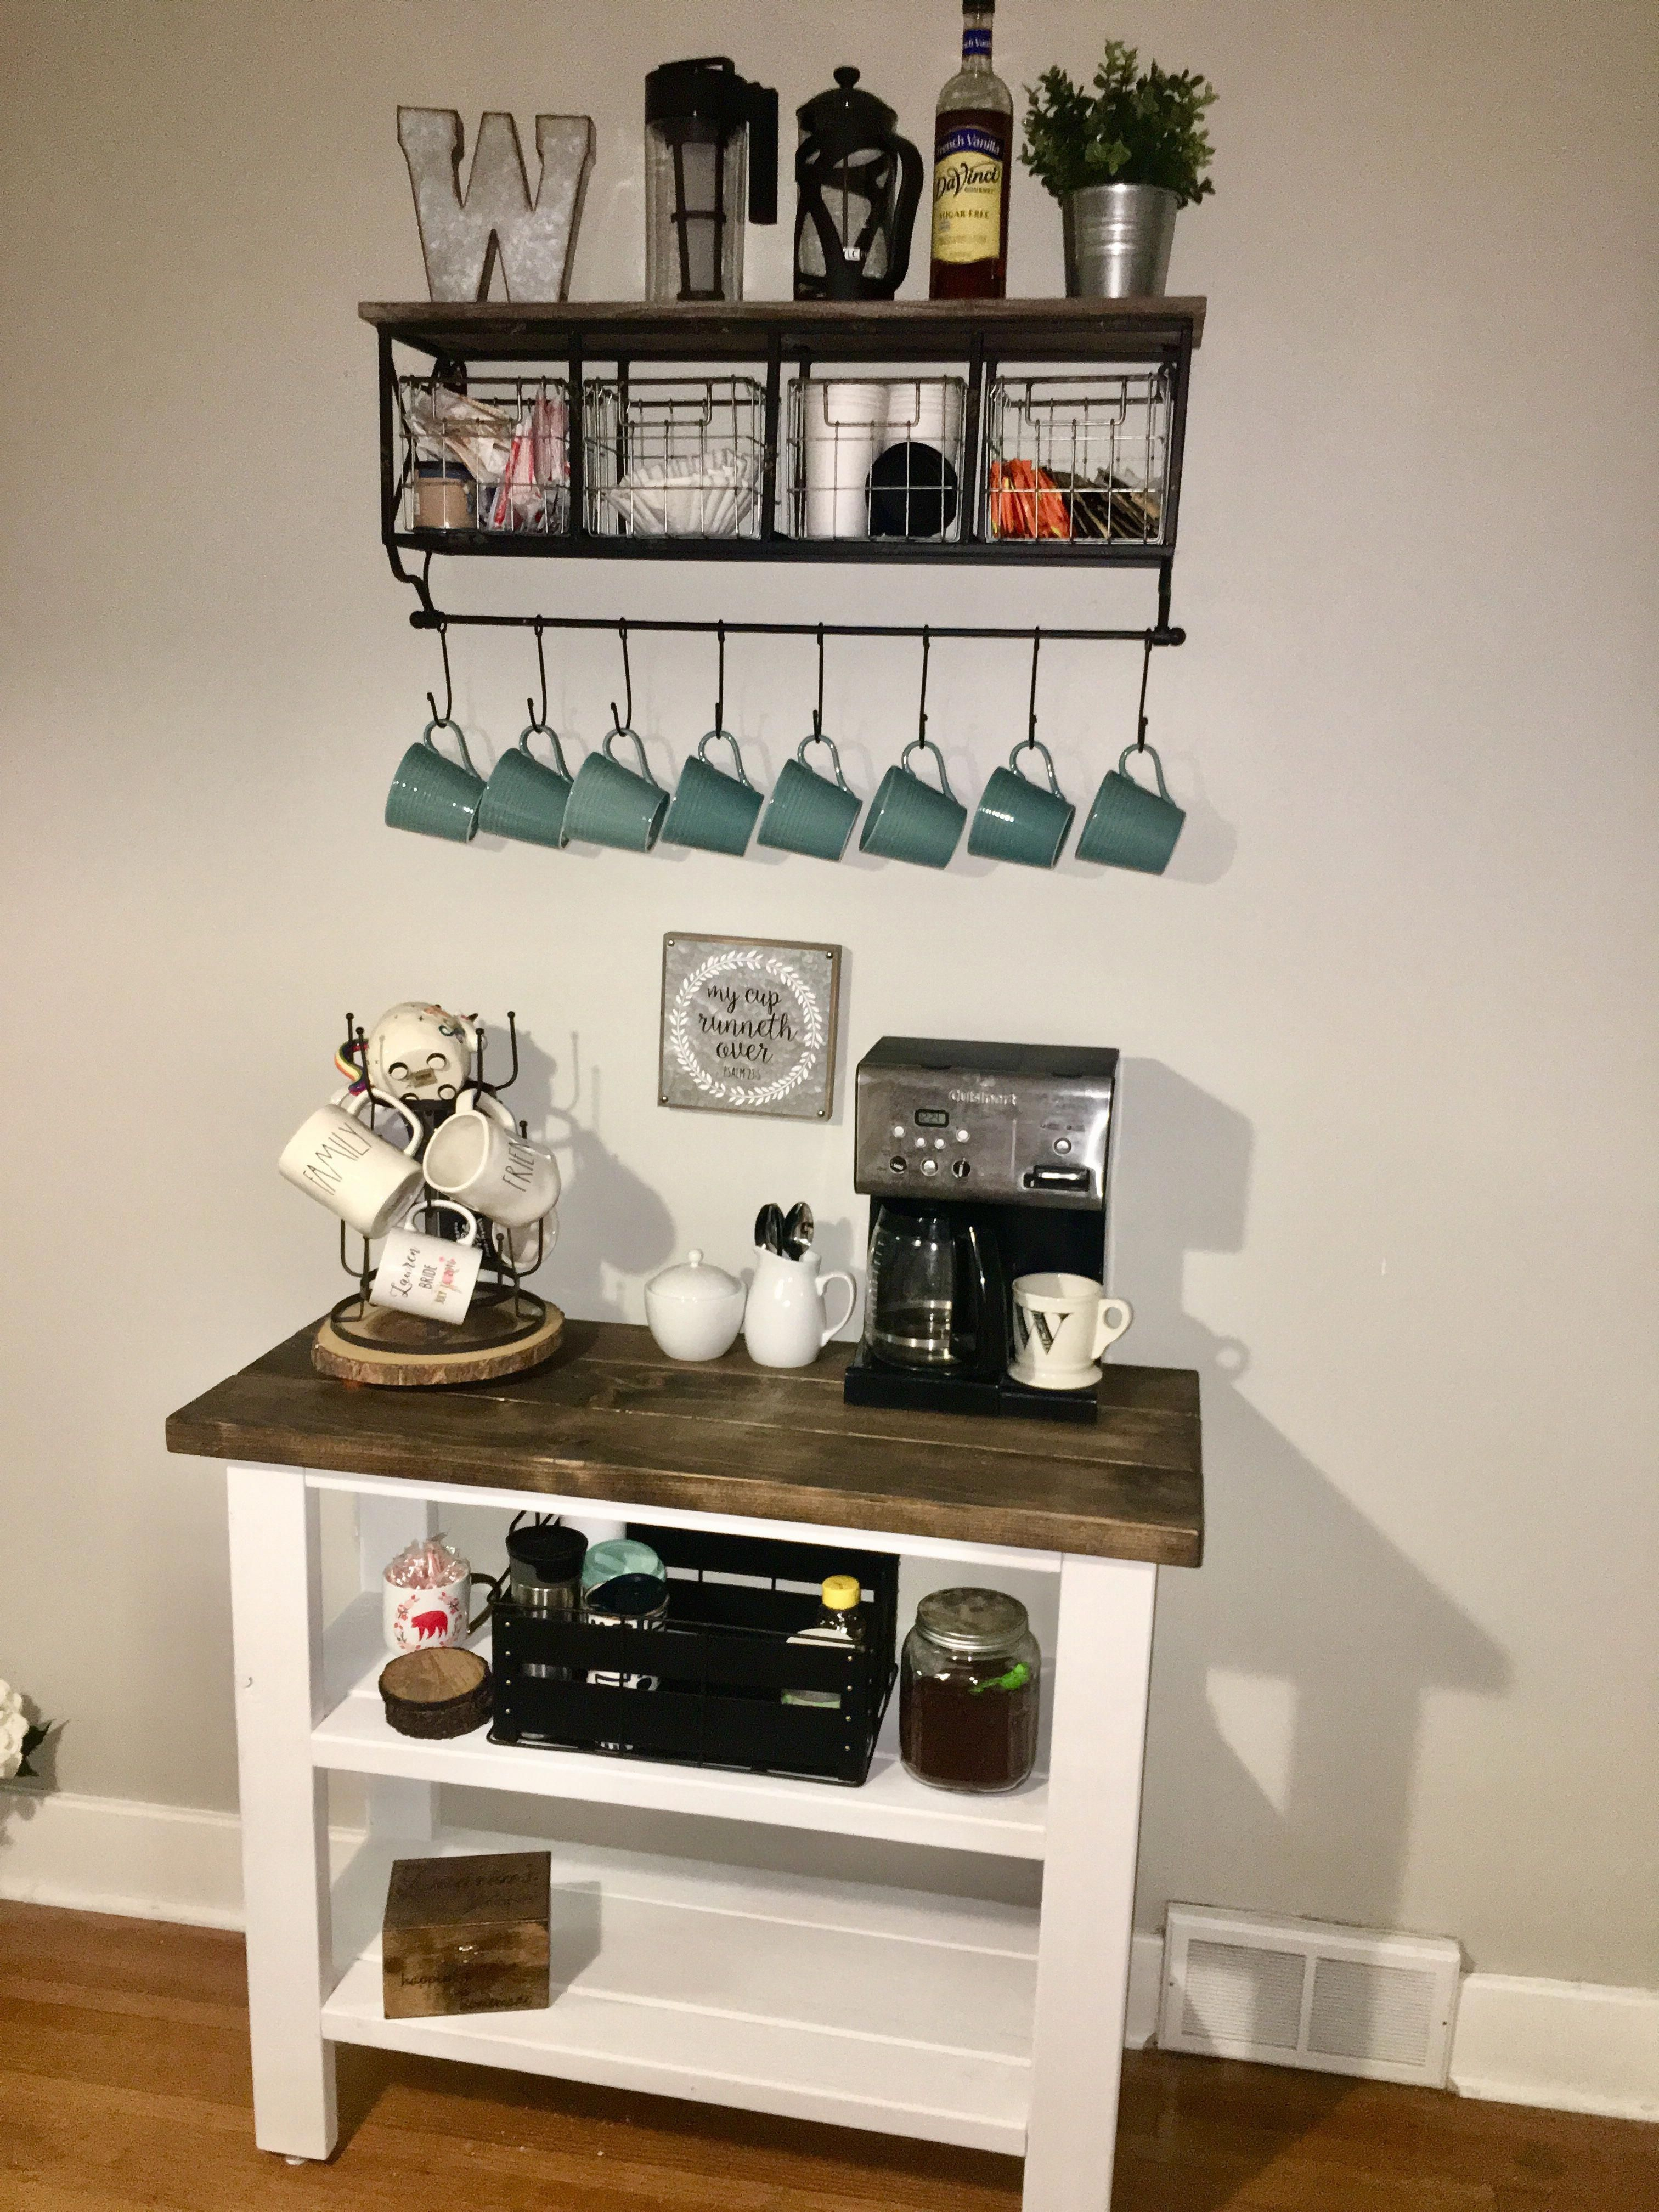 If You Really Want To Have A Coffee Shop With This Great Coffee Maker In The Kitchen Or Inside Your House Coffee Bar Home Coffe Bar Decor Home Coffee Stations